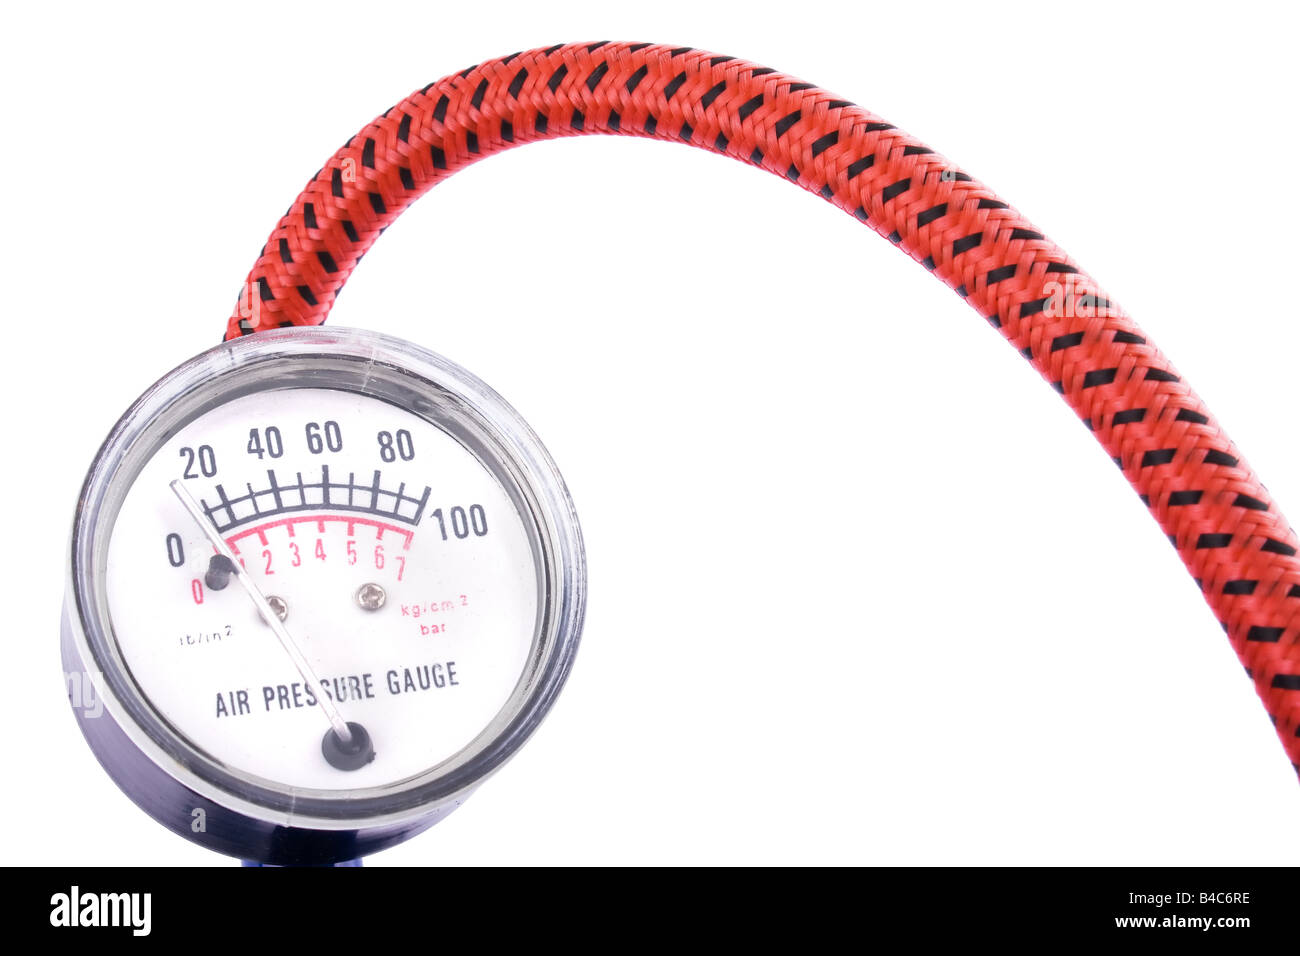 Air Pressure Gauge or Manometer isolated on a white background - Stock Image